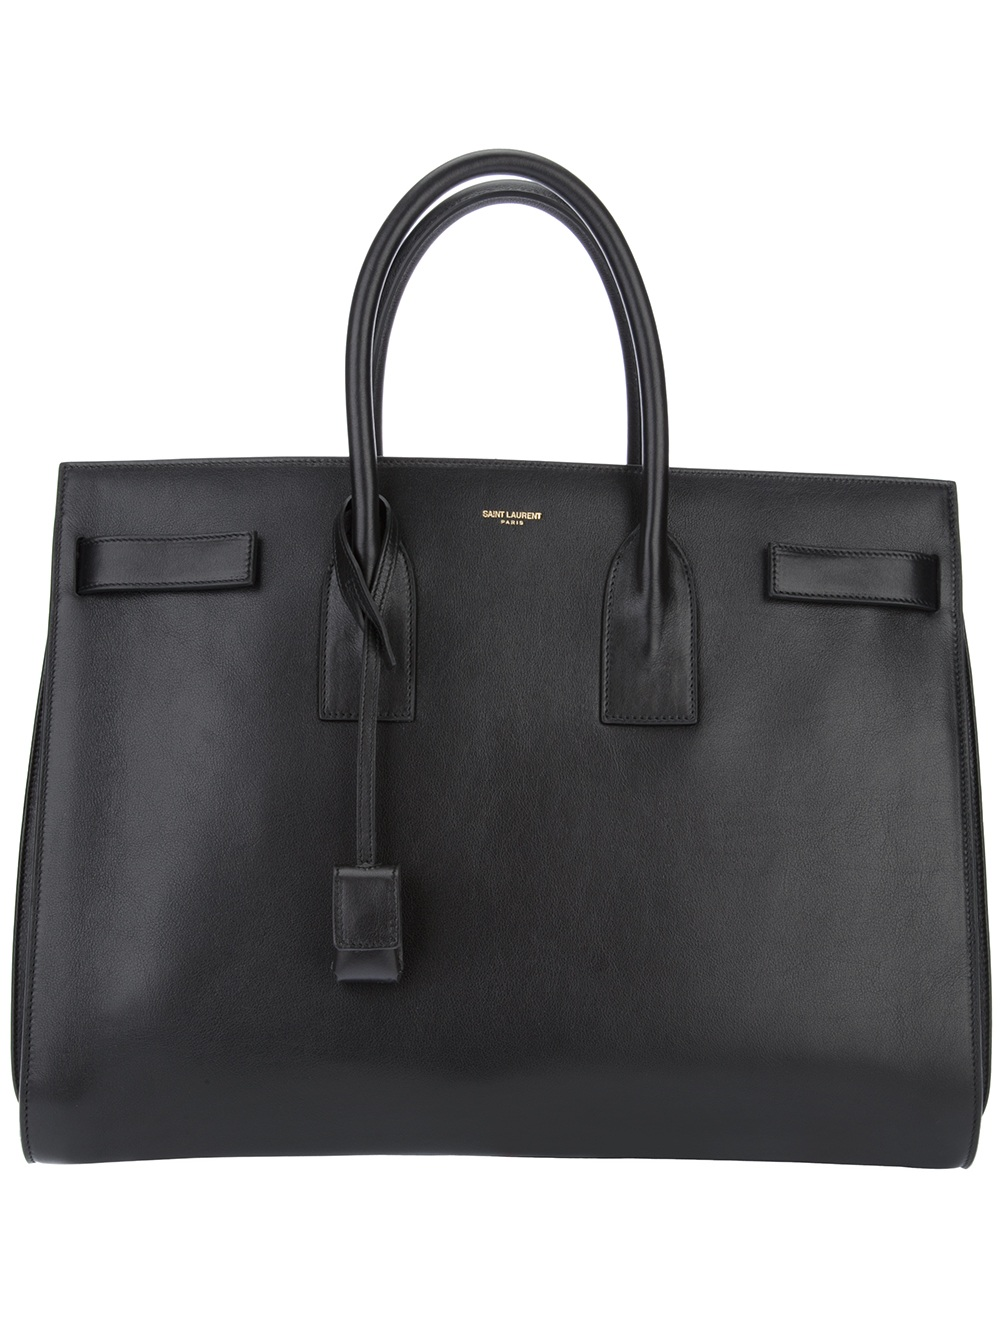 saint laurent sac du jour tote in black lyst. Black Bedroom Furniture Sets. Home Design Ideas